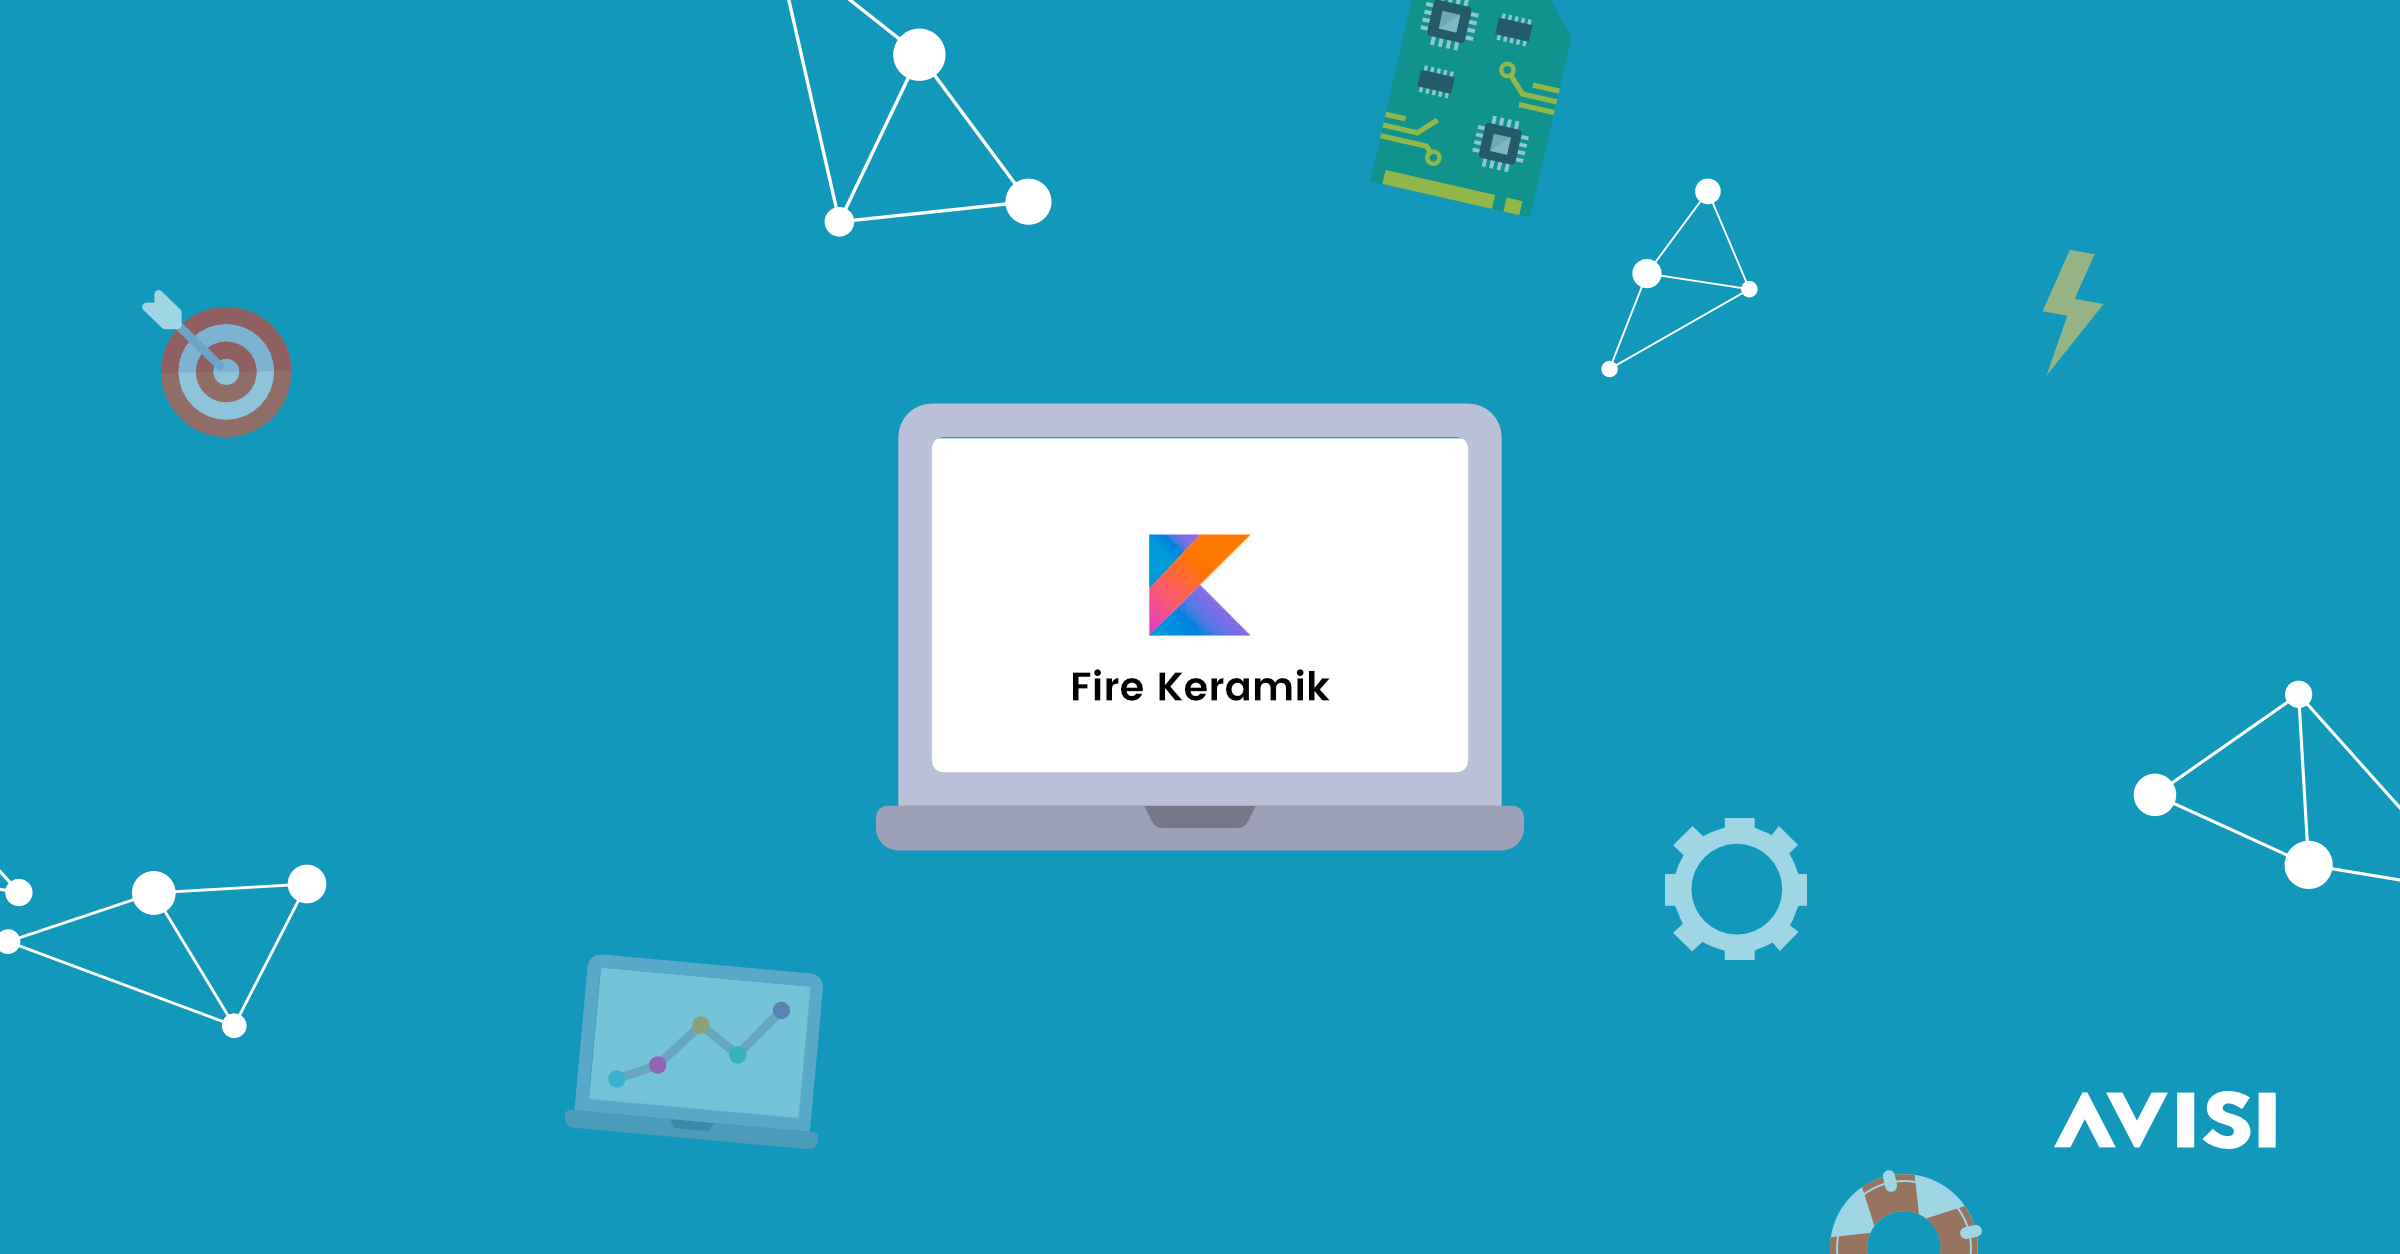 Become a Fire Keramik with Kotlin